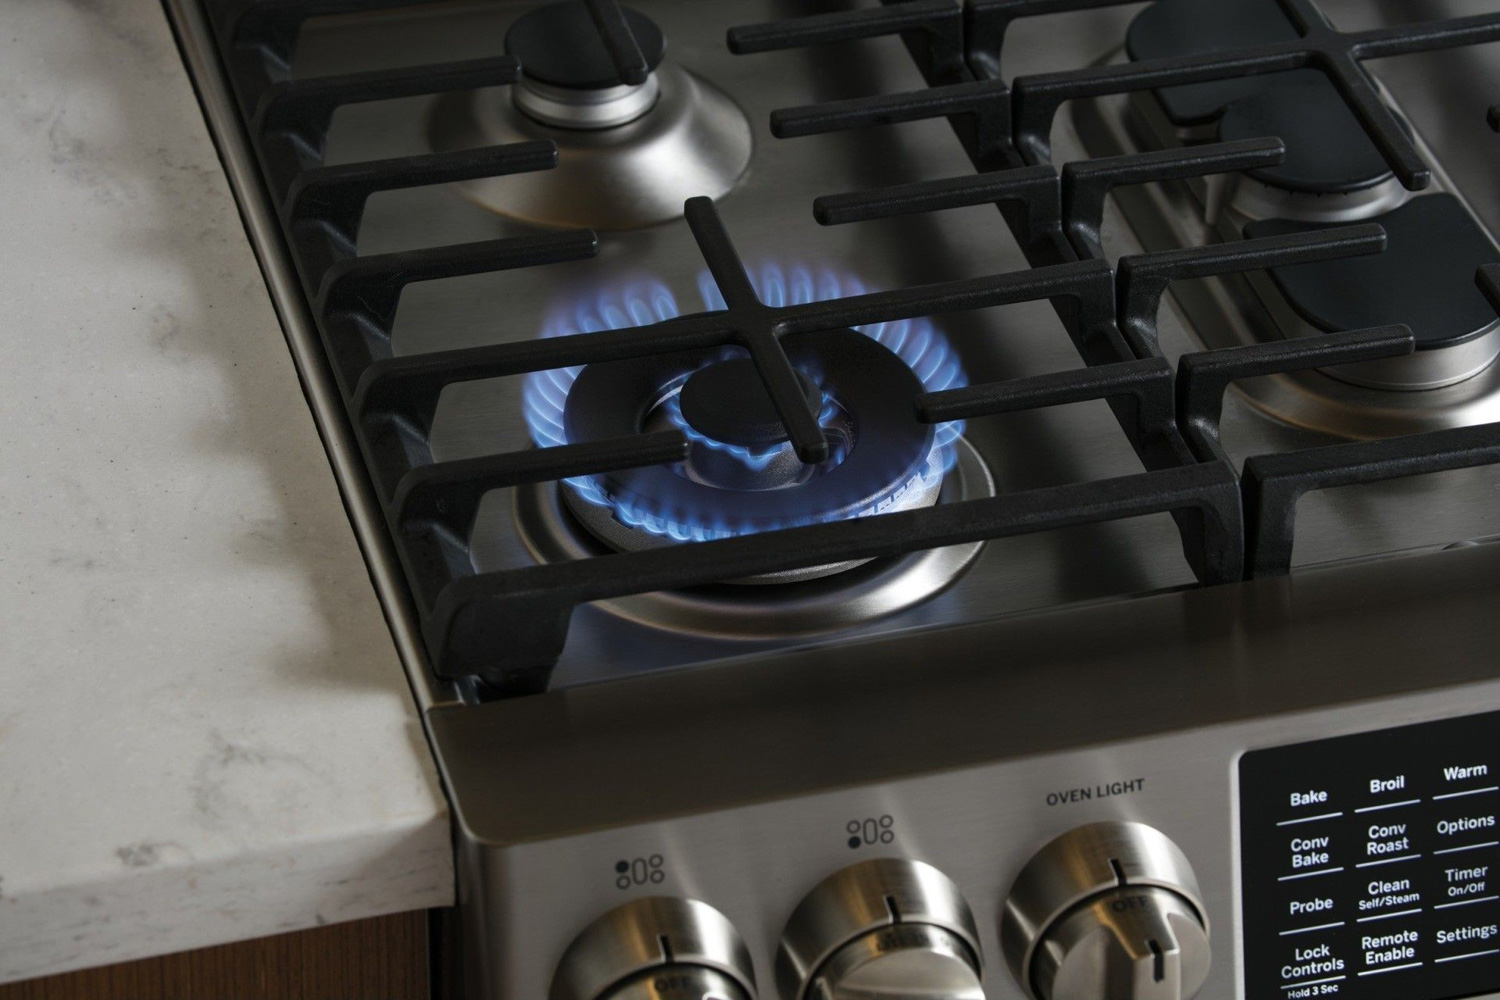 pgs930selss__ge_profile_30_slide_in_gas_range_convection_self_clean___stainless_steel_6-1